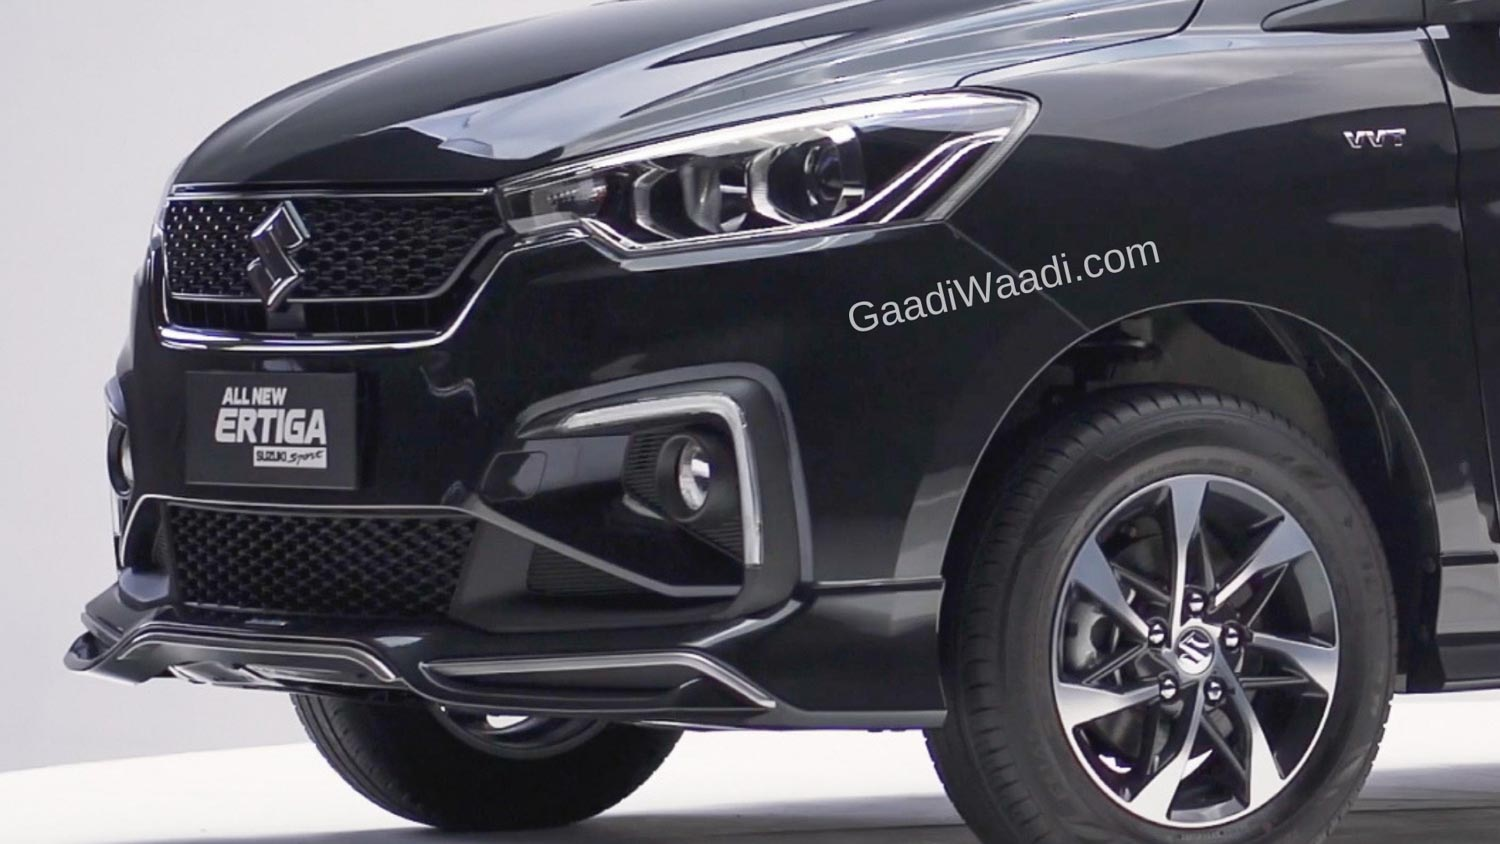 Top 10 Upcoming Cars In India Under 10 Lakh Launch Details